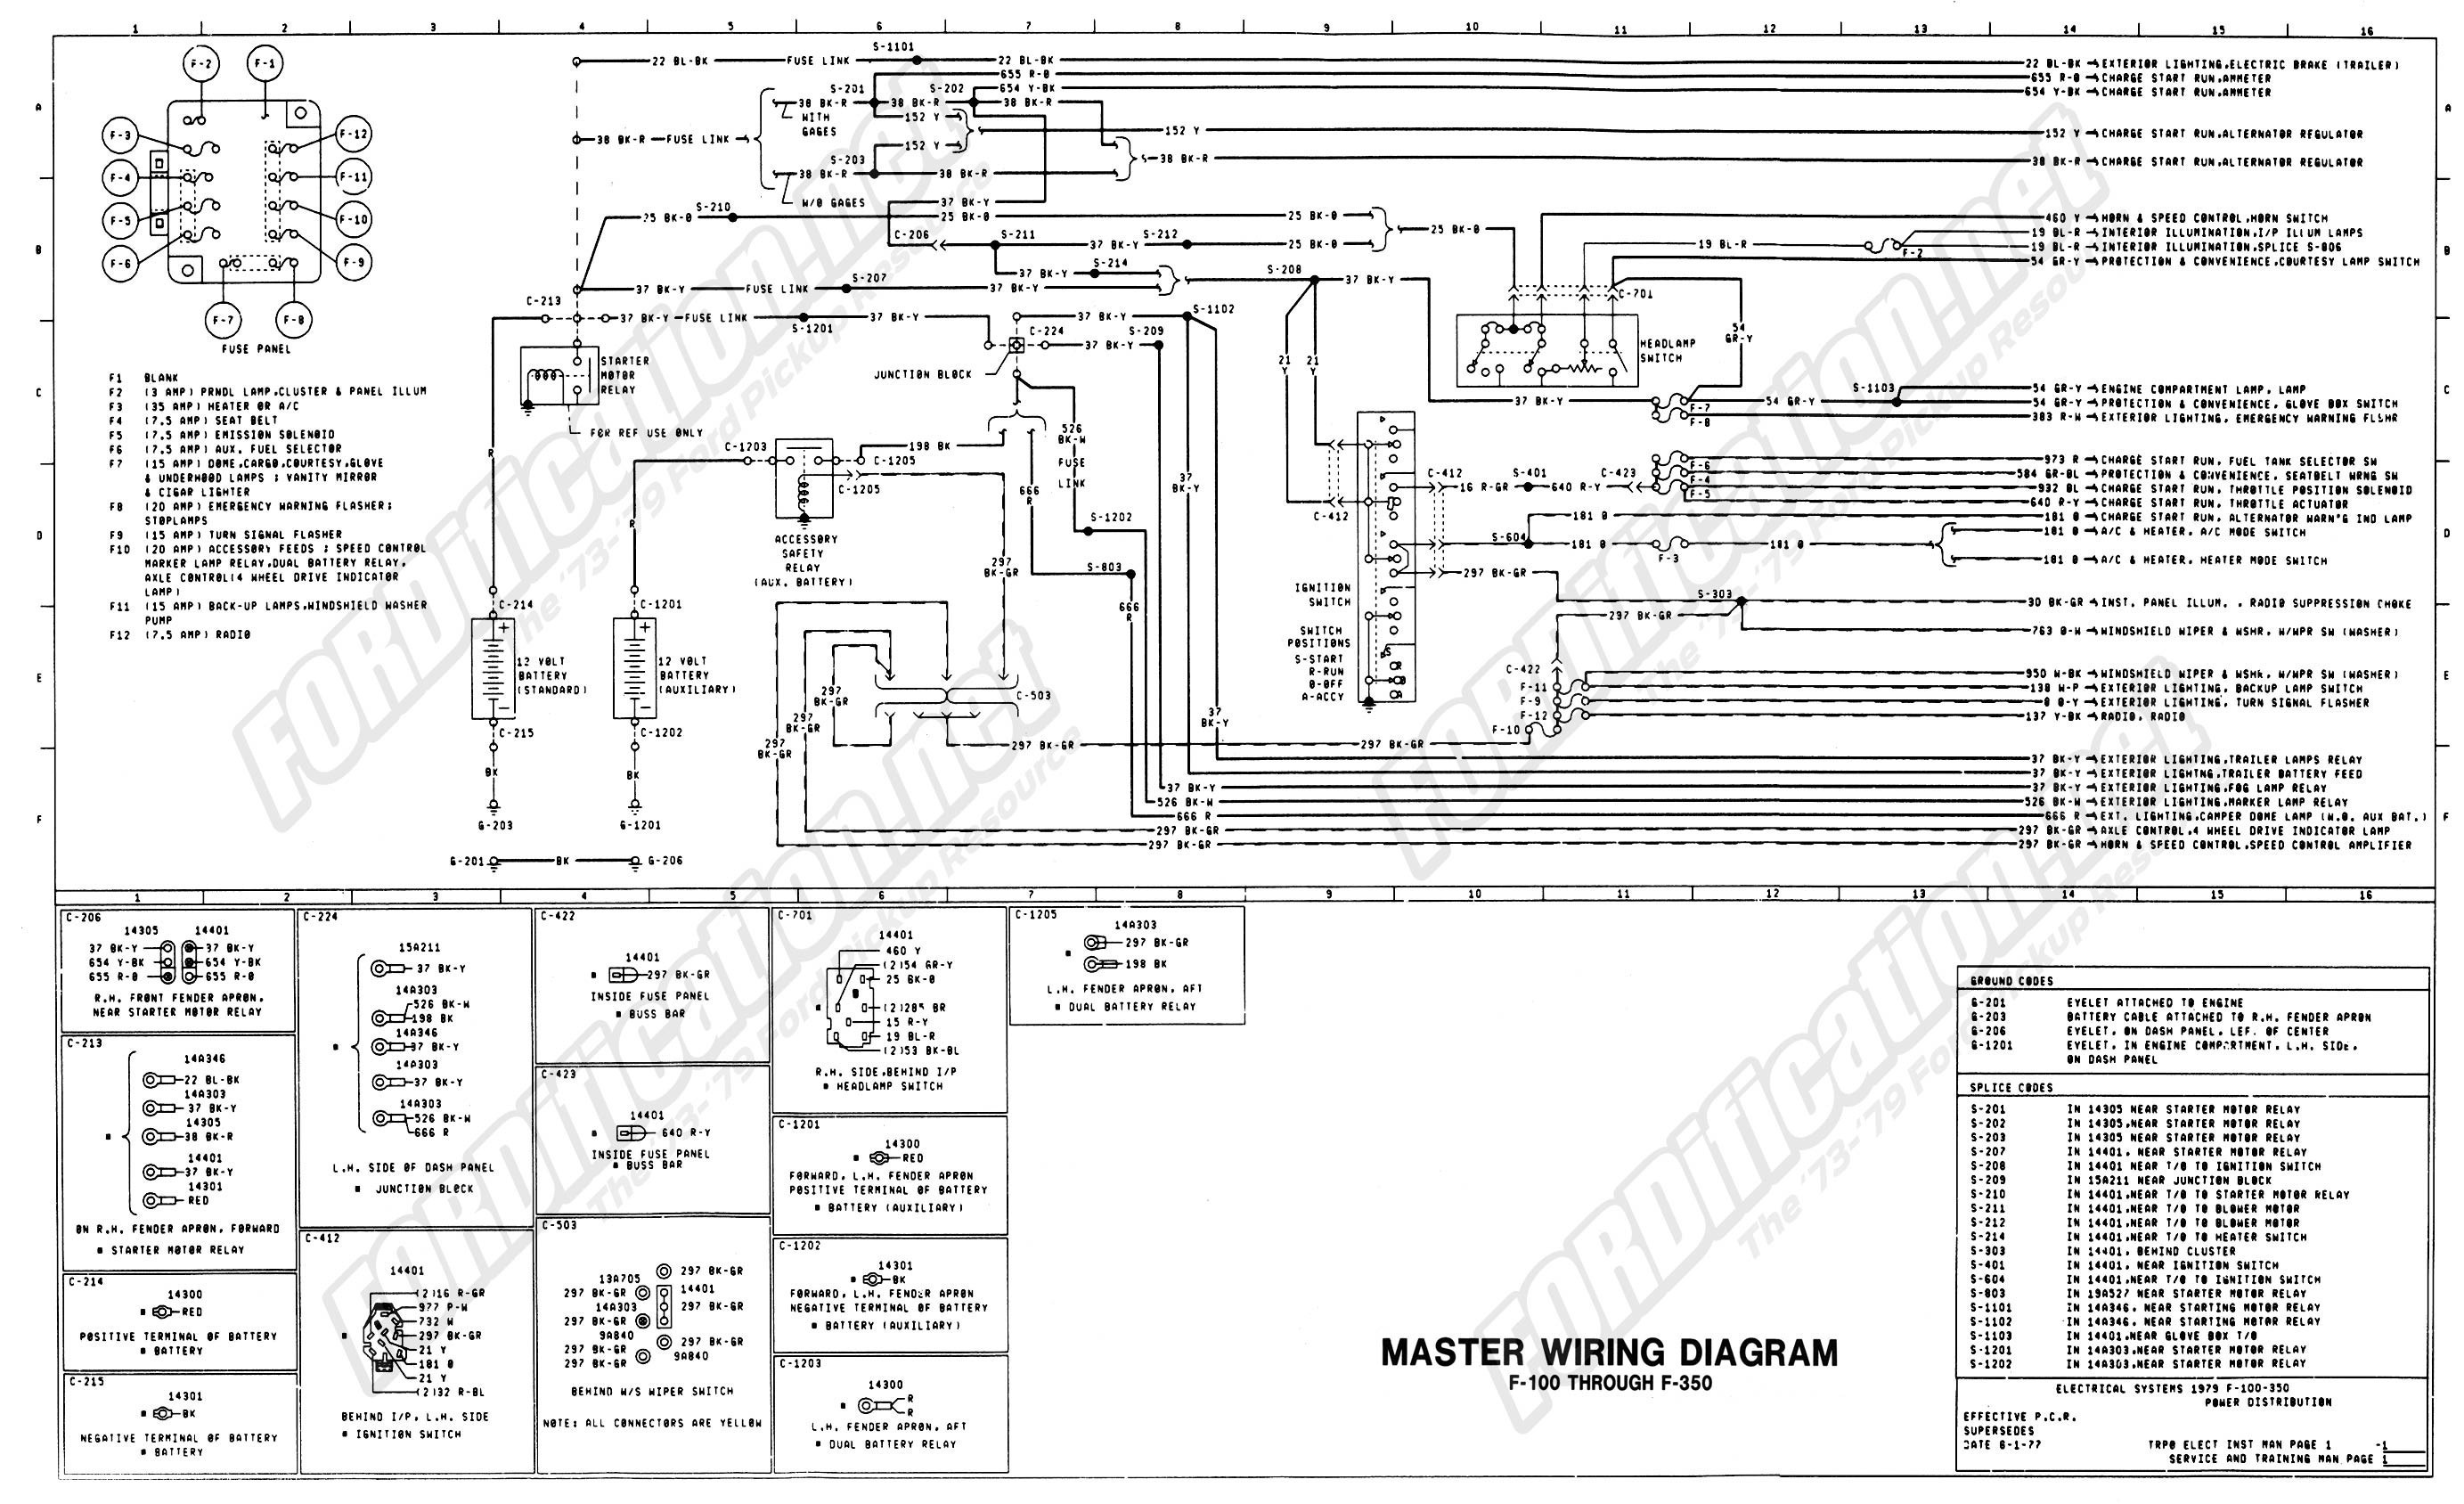 International Truck Fuse Panel Diagram Mack Parts Fuse Diagram Wiring Diagram Paper Of International Truck Fuse Panel Diagram 1991 Plymouth Acclaim Fuse Box Diagram